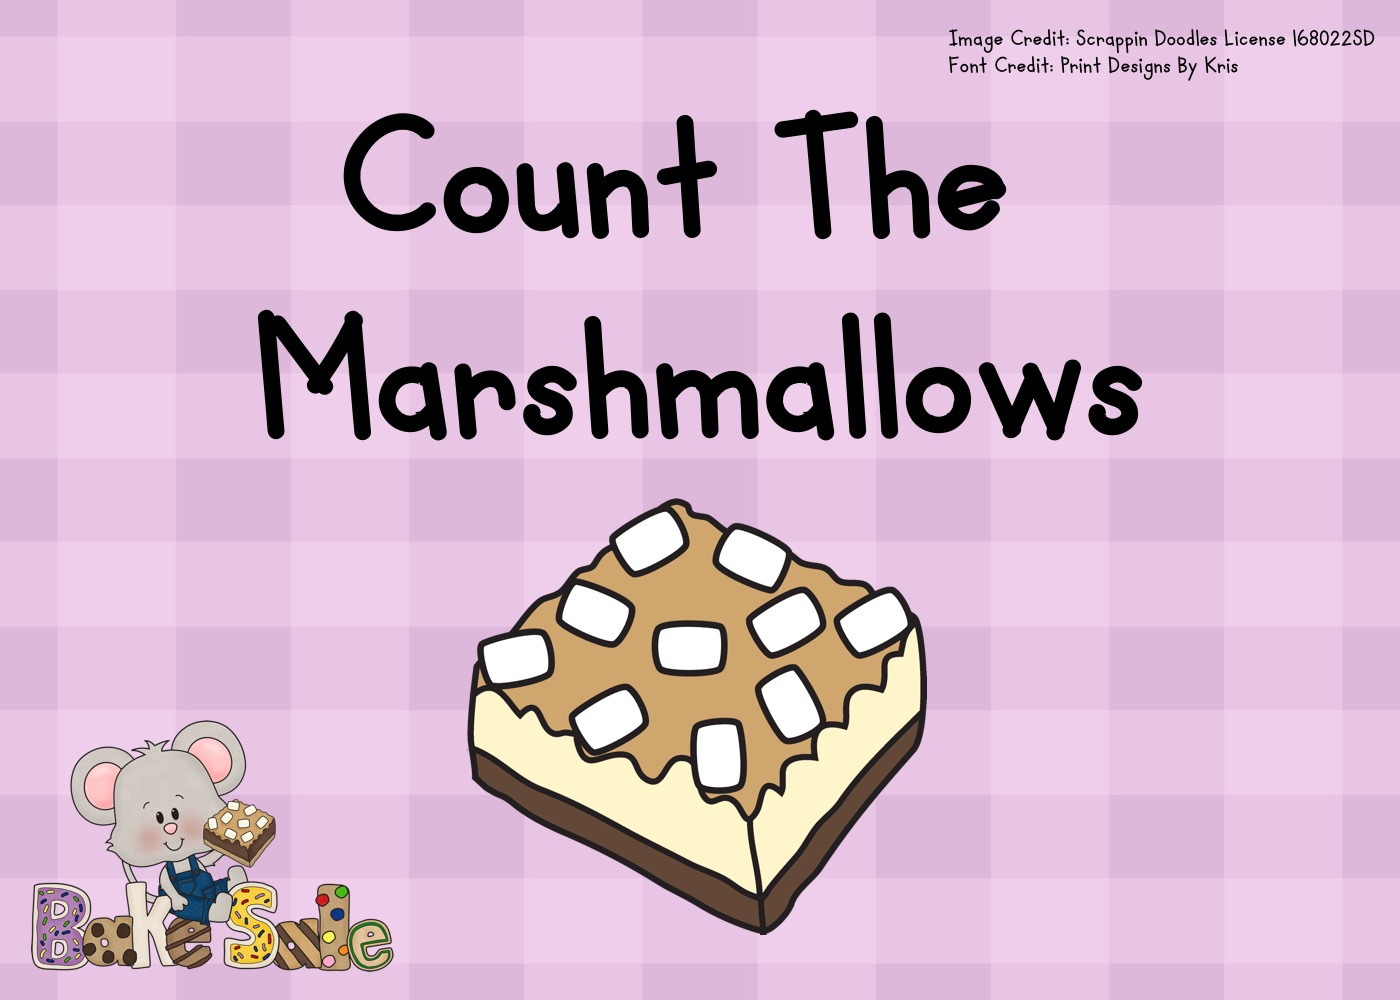 Fun Marshmallow Printables for Preschool and Kindergarten | Food Themed Counting Games | Hands On Math Homeschool Activities | Kids Classroom Center Ideas and Worksheets #FreePrintableWorksheetsForKids #counting #food #marshmallows #clipcards